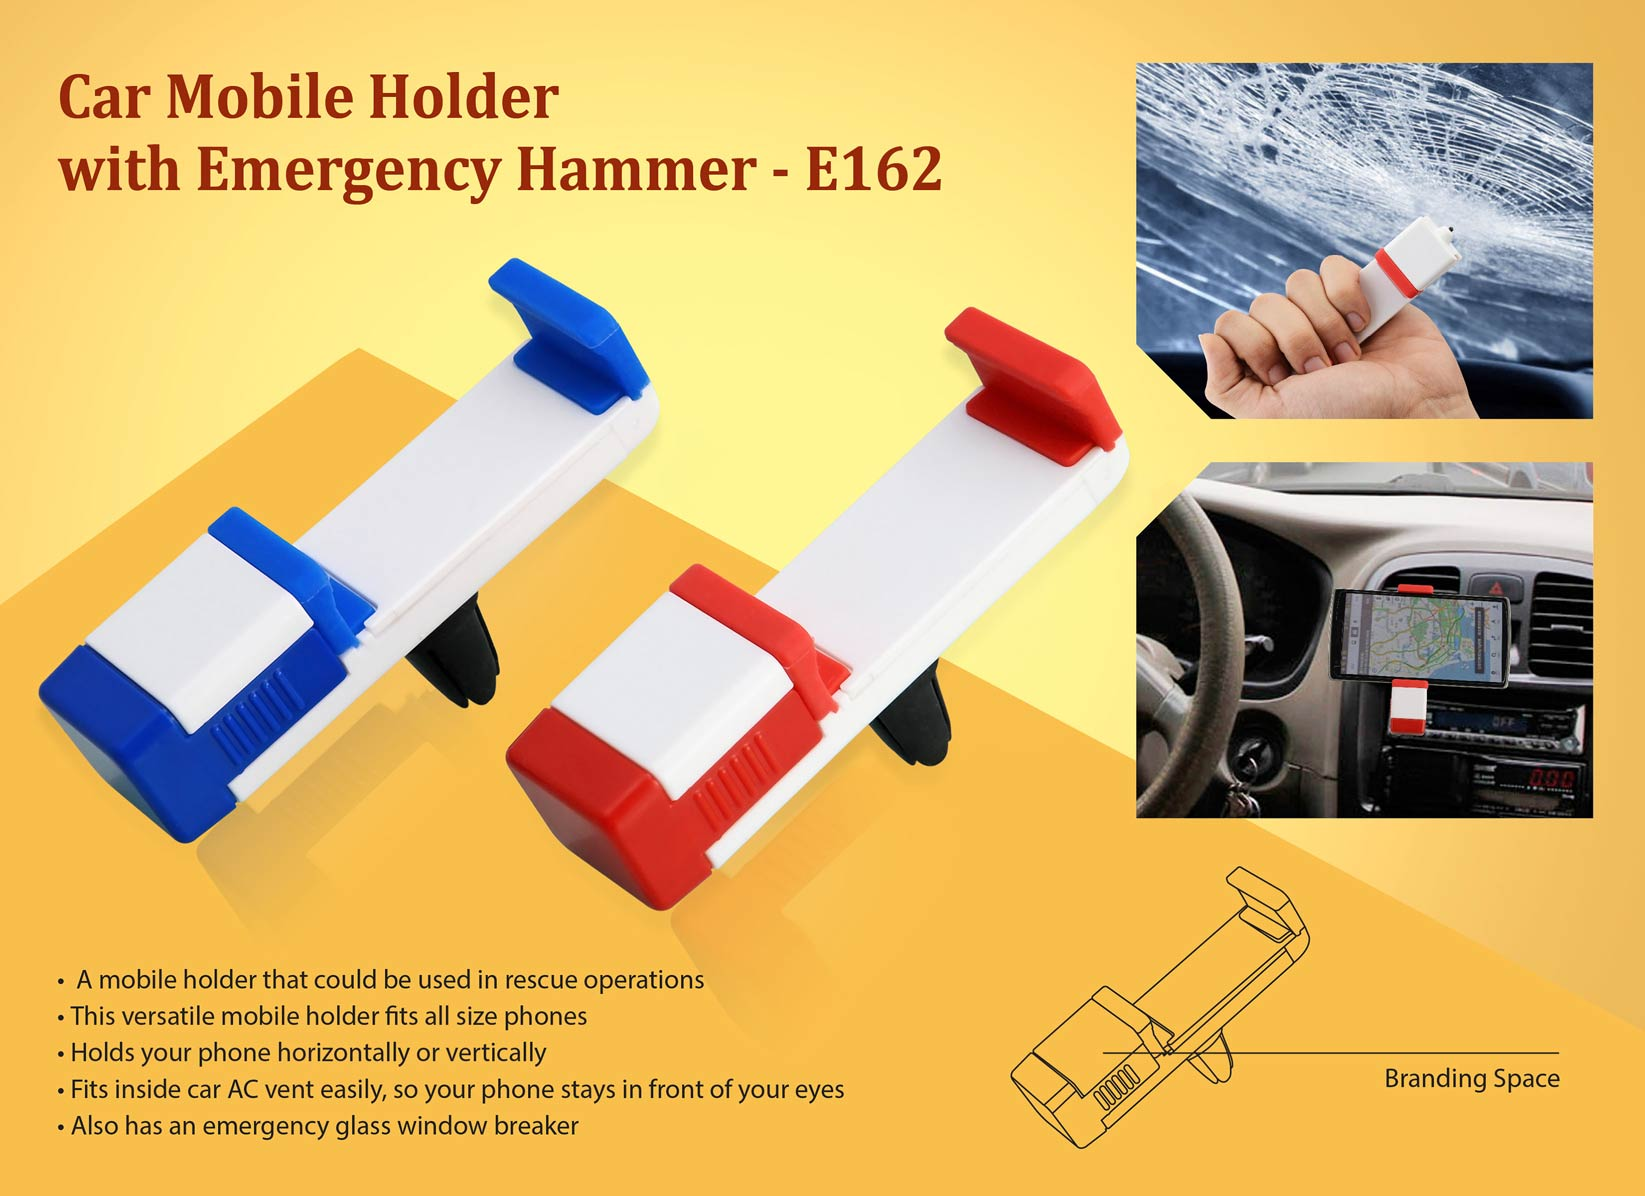 E162 - Car Vent mobile holder with emergency hammer